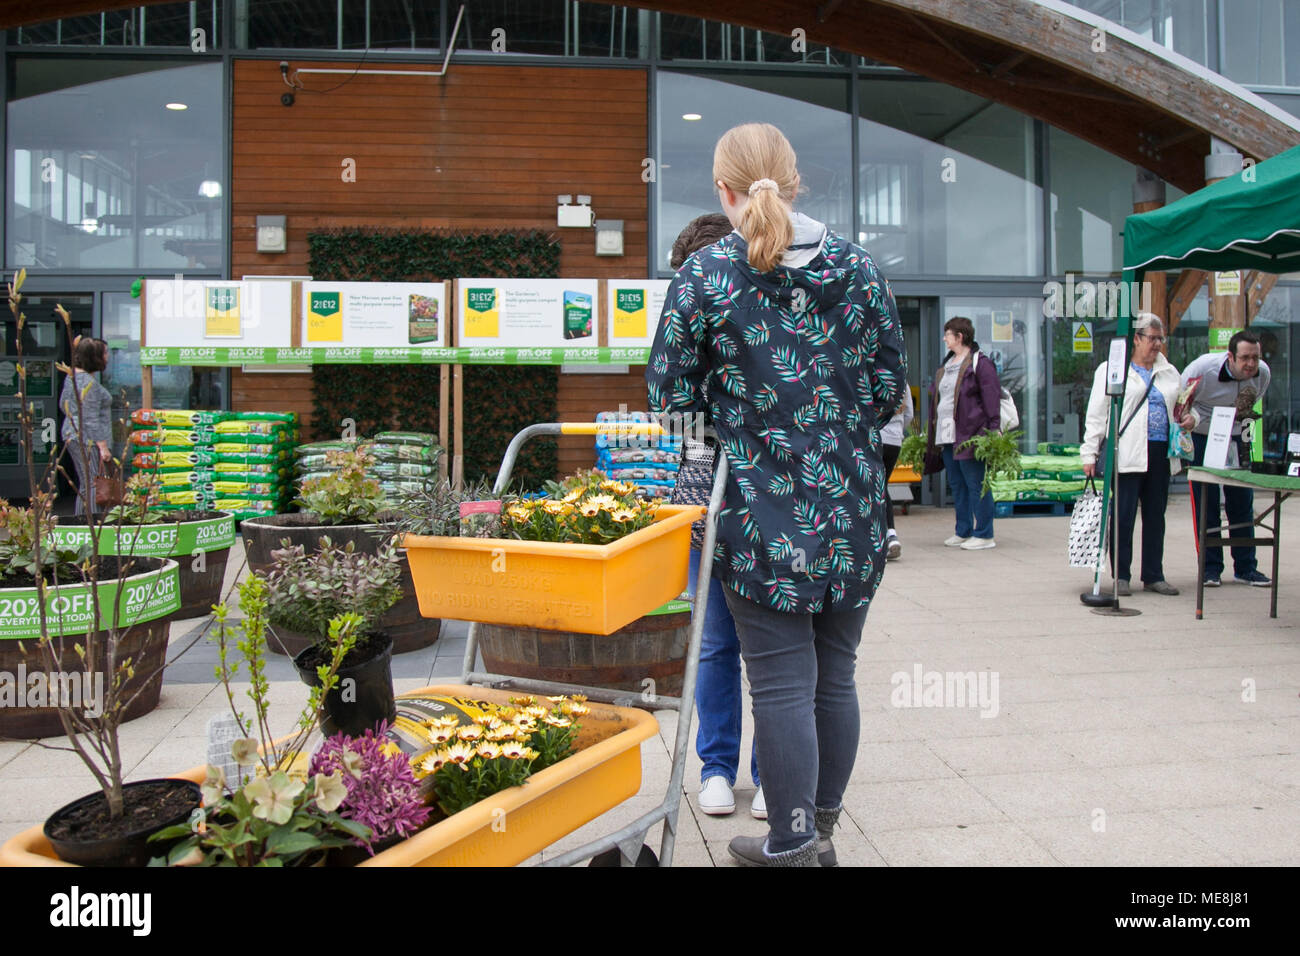 Southport, Merseyside, UK 22 April 2018. . UK Weather. Gardeners flock to Garden Centres as the warm weather continues, tempered with light showers earlier in the day. Springtime bonanza for local gardening stores with buyers taking advantage of discounted items.  Credit; MediaWorldImages/AlamyLiveNews.MediaWorldImages/AlamyLiveNews. Stock Photo